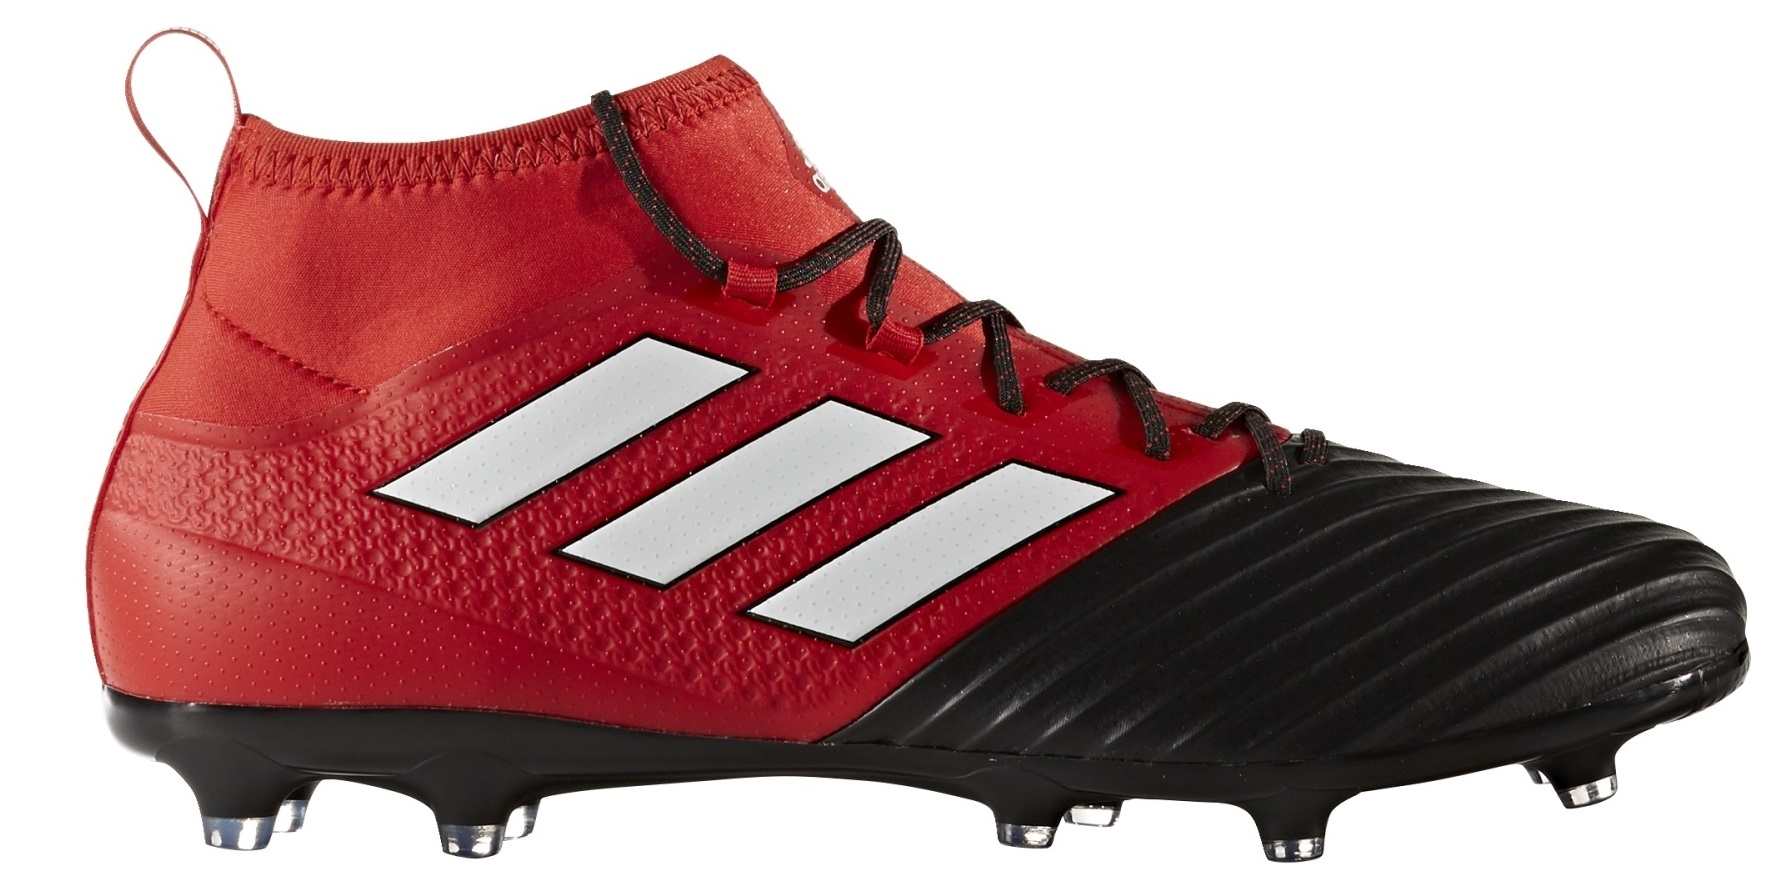 ad7356f2a Adidas Football boots Ace 17.2 Primemesh FG Red Limit Pack colore Red Black  - Adidas - SportIT.com